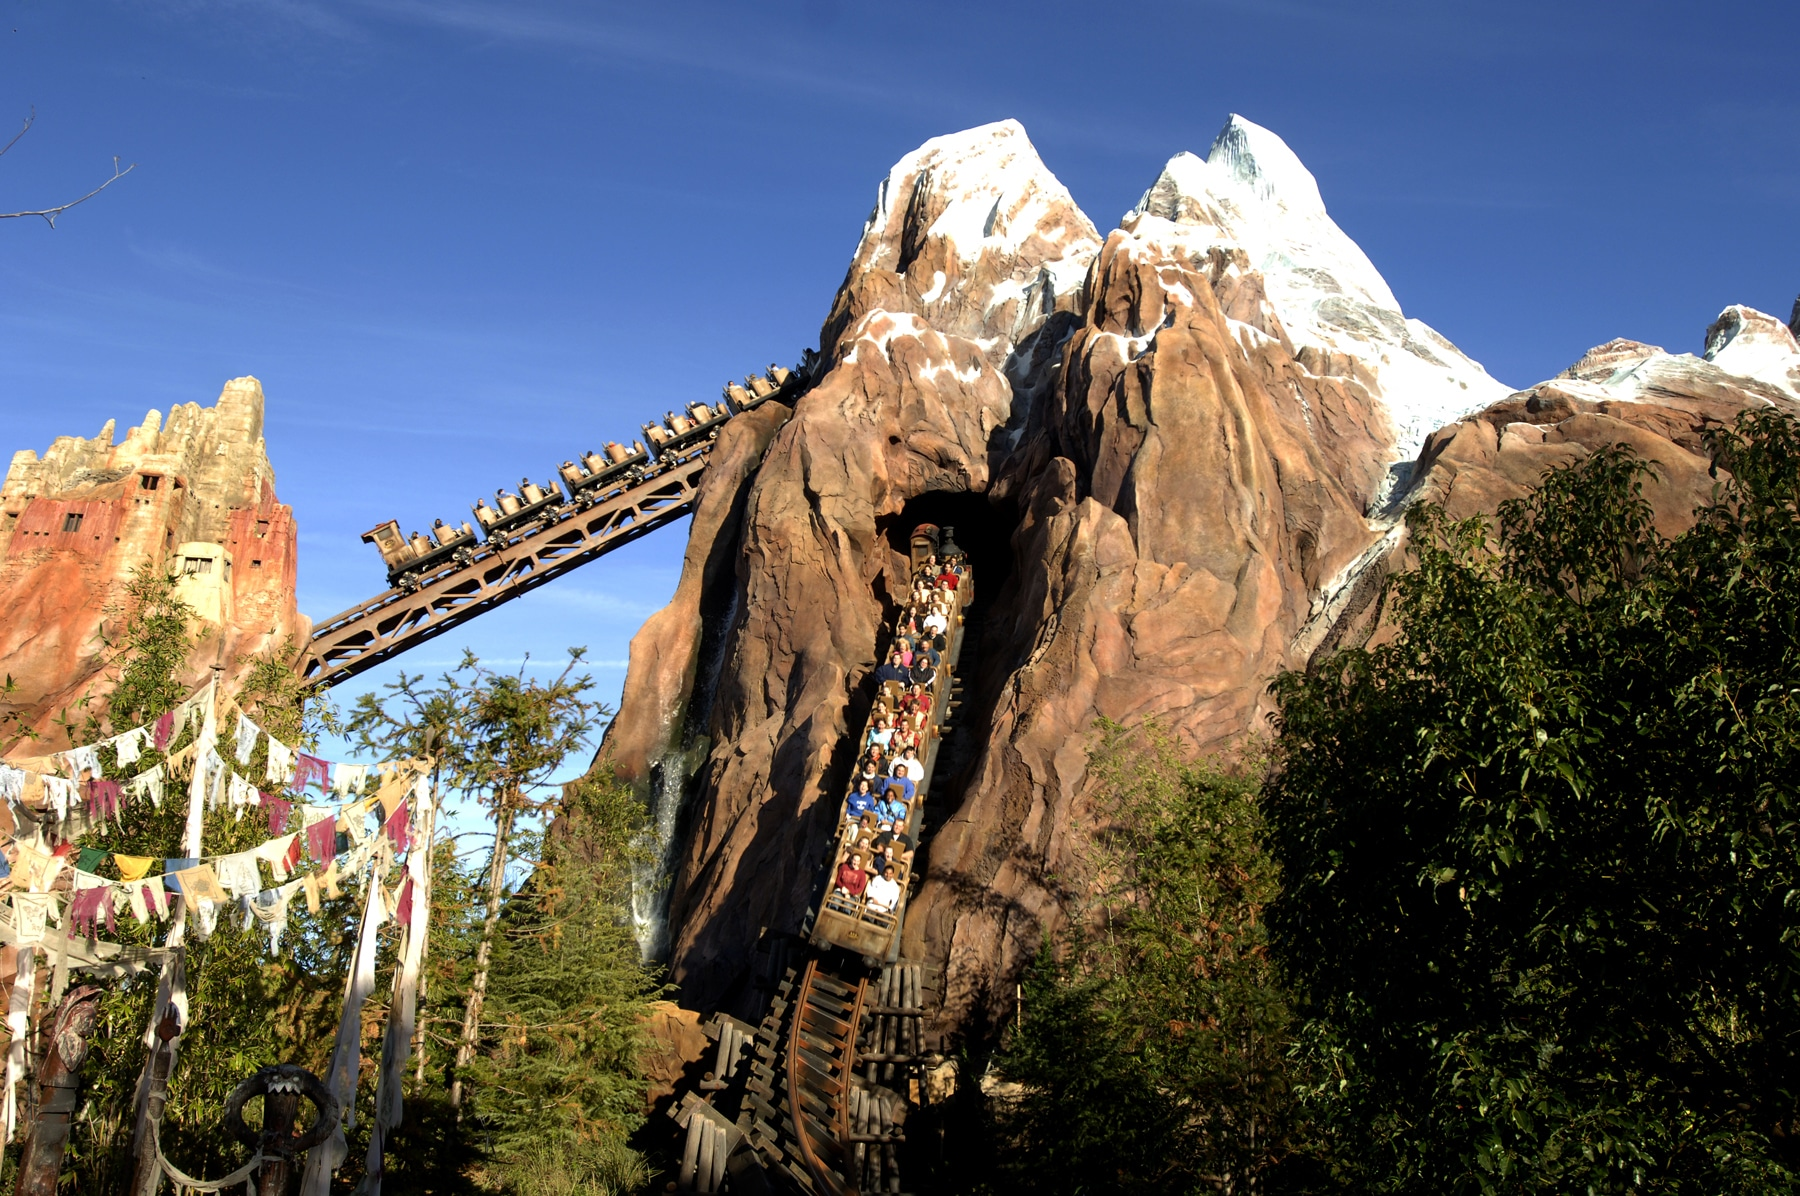 The Expedition Everest roller coaster at Disney's Animal Kingdom heads down the mountain.